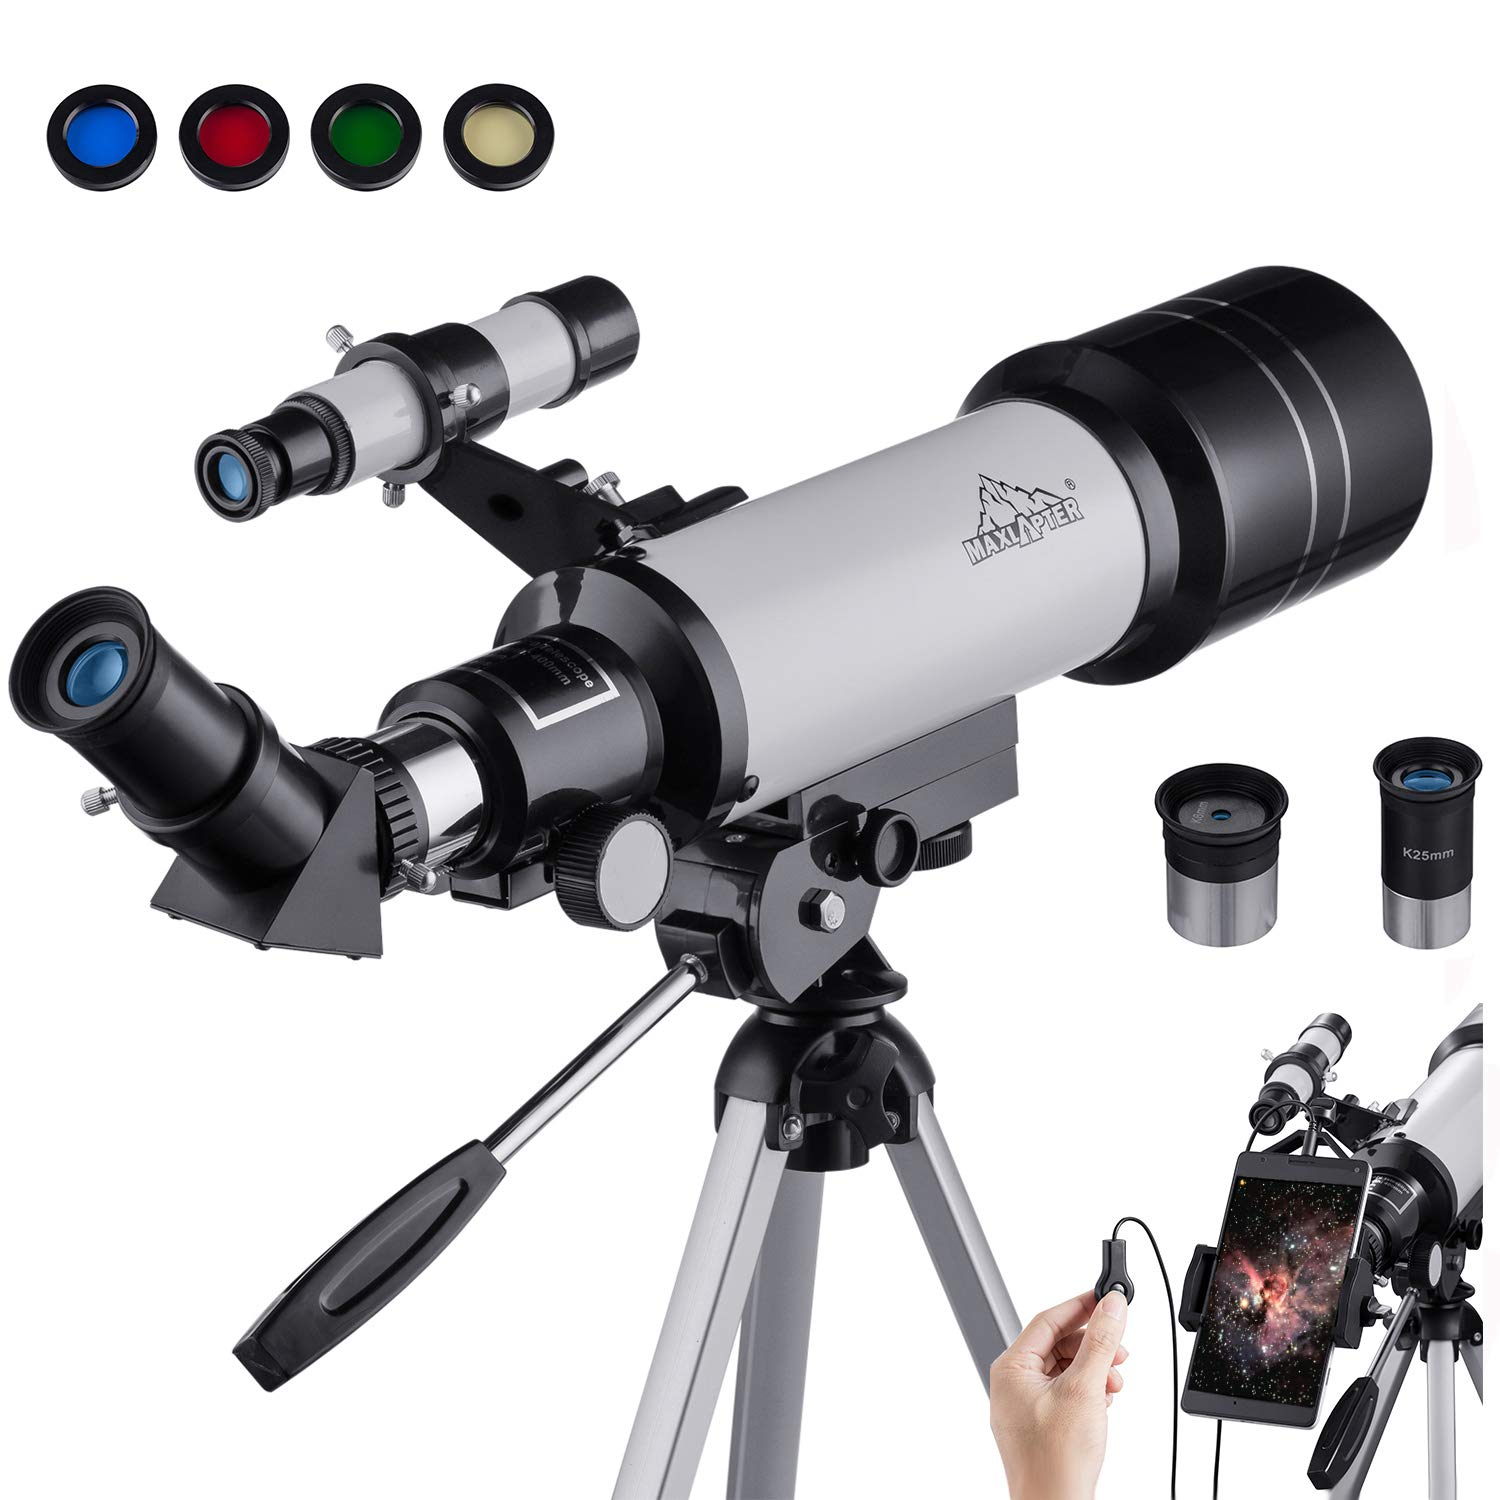 astronomy kits for adults - HD1308×1245